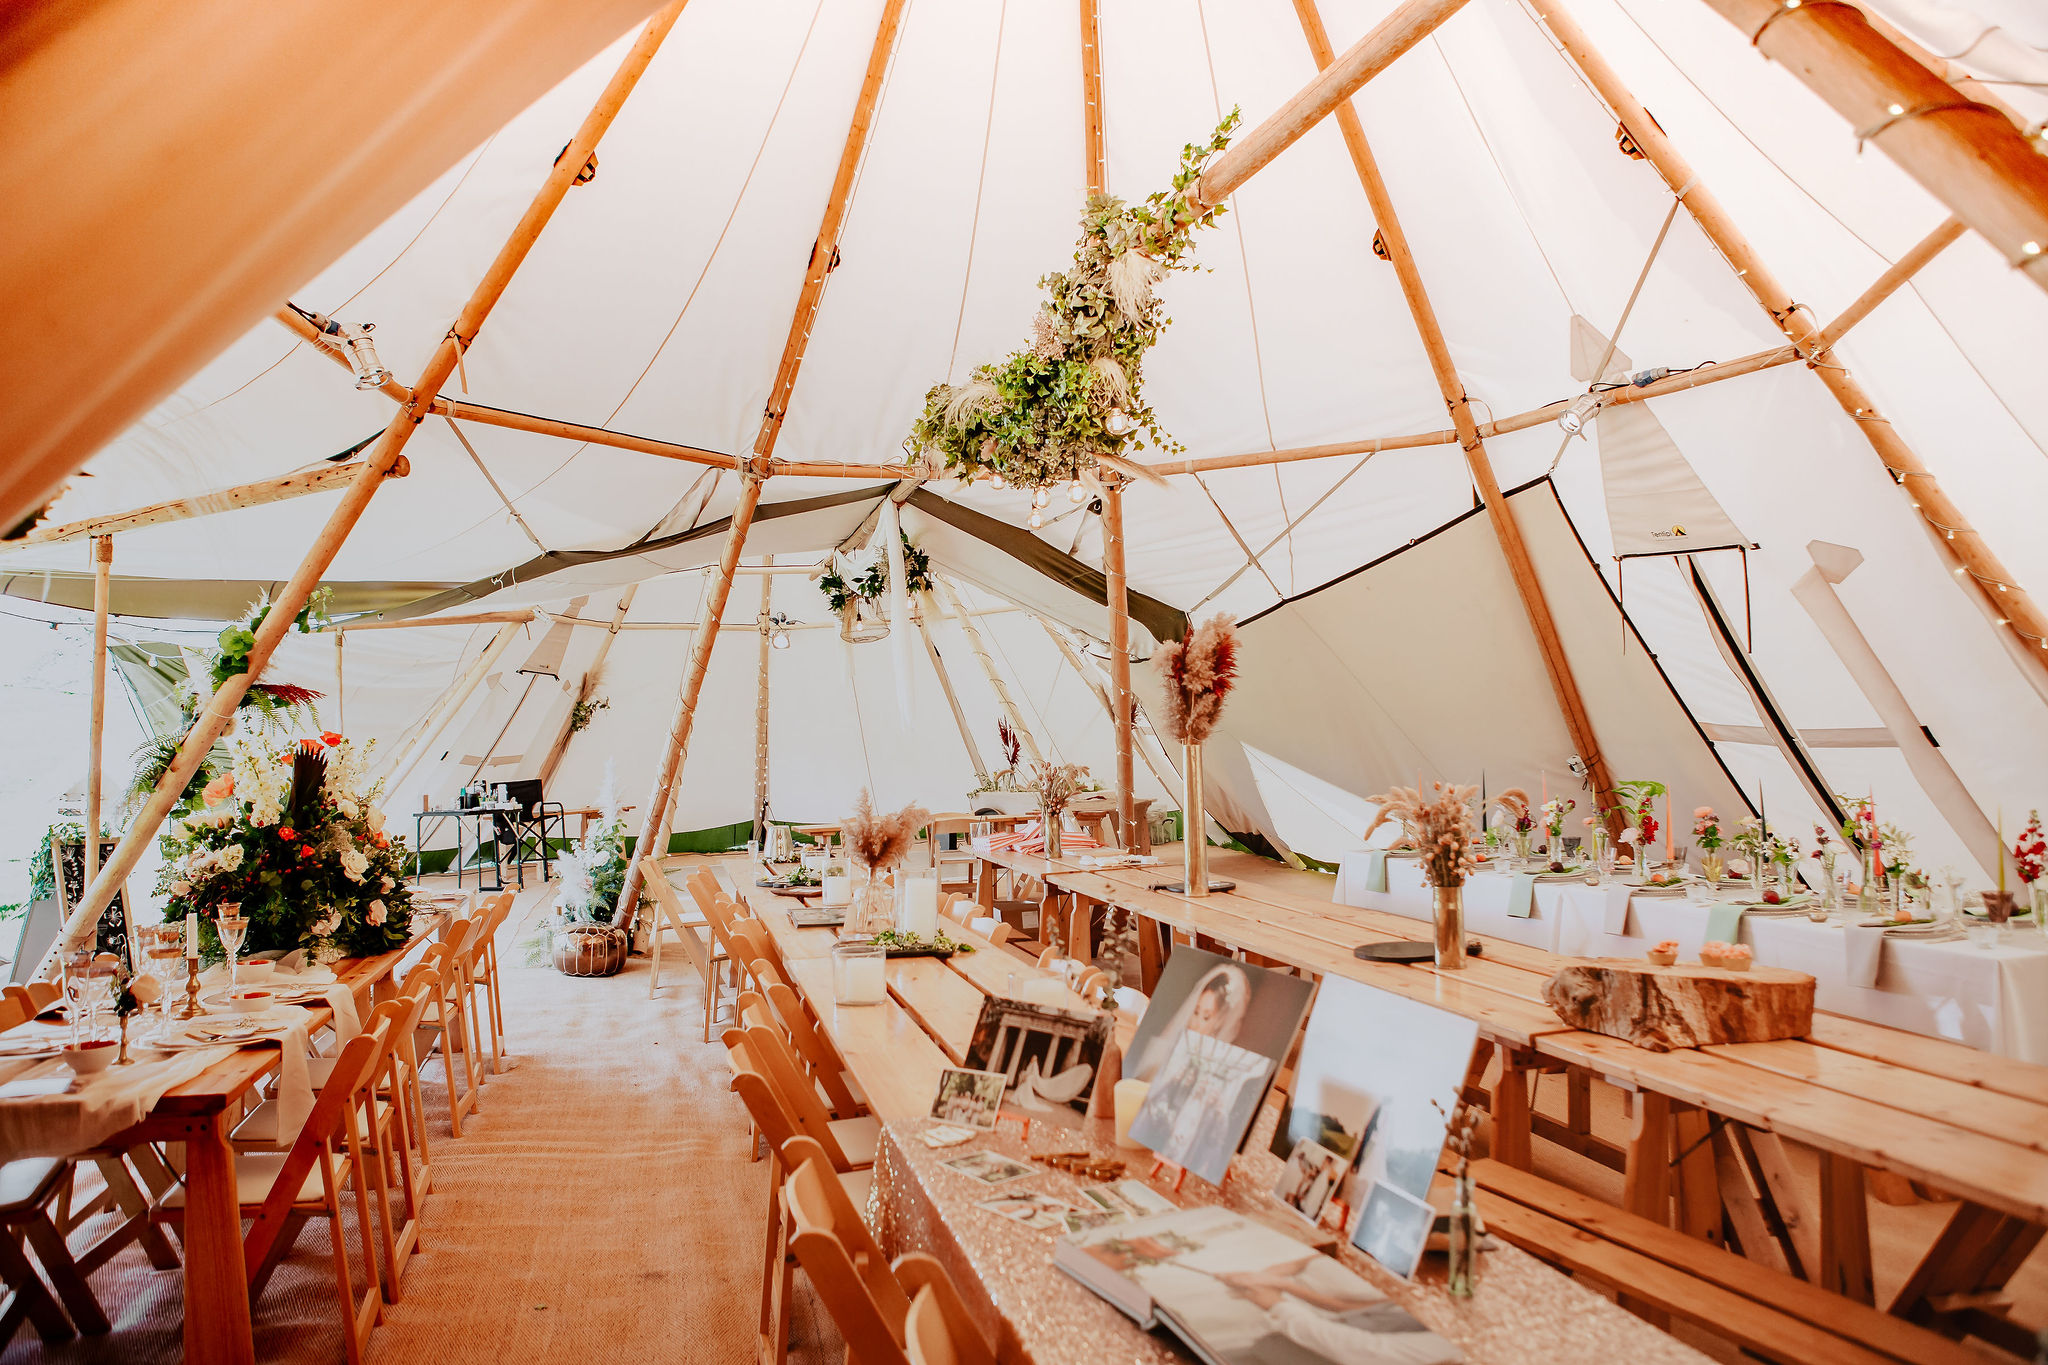 Love the quality of light in the white canvas tipis